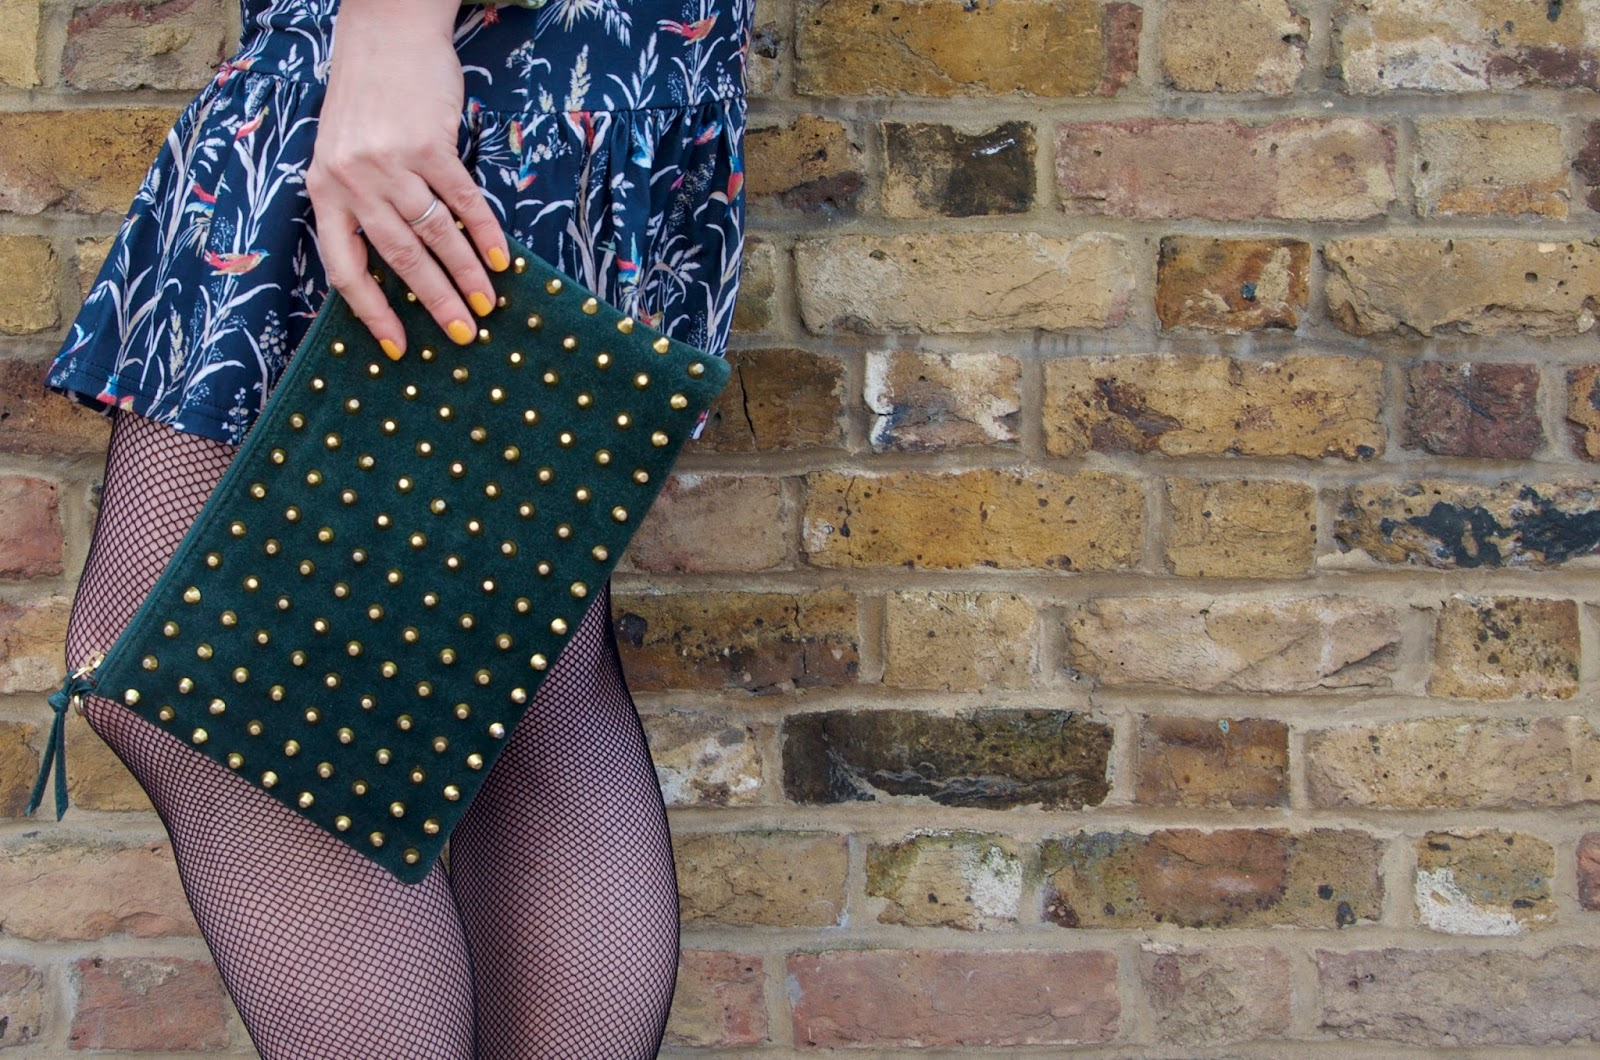 green studded clutch and fishnets